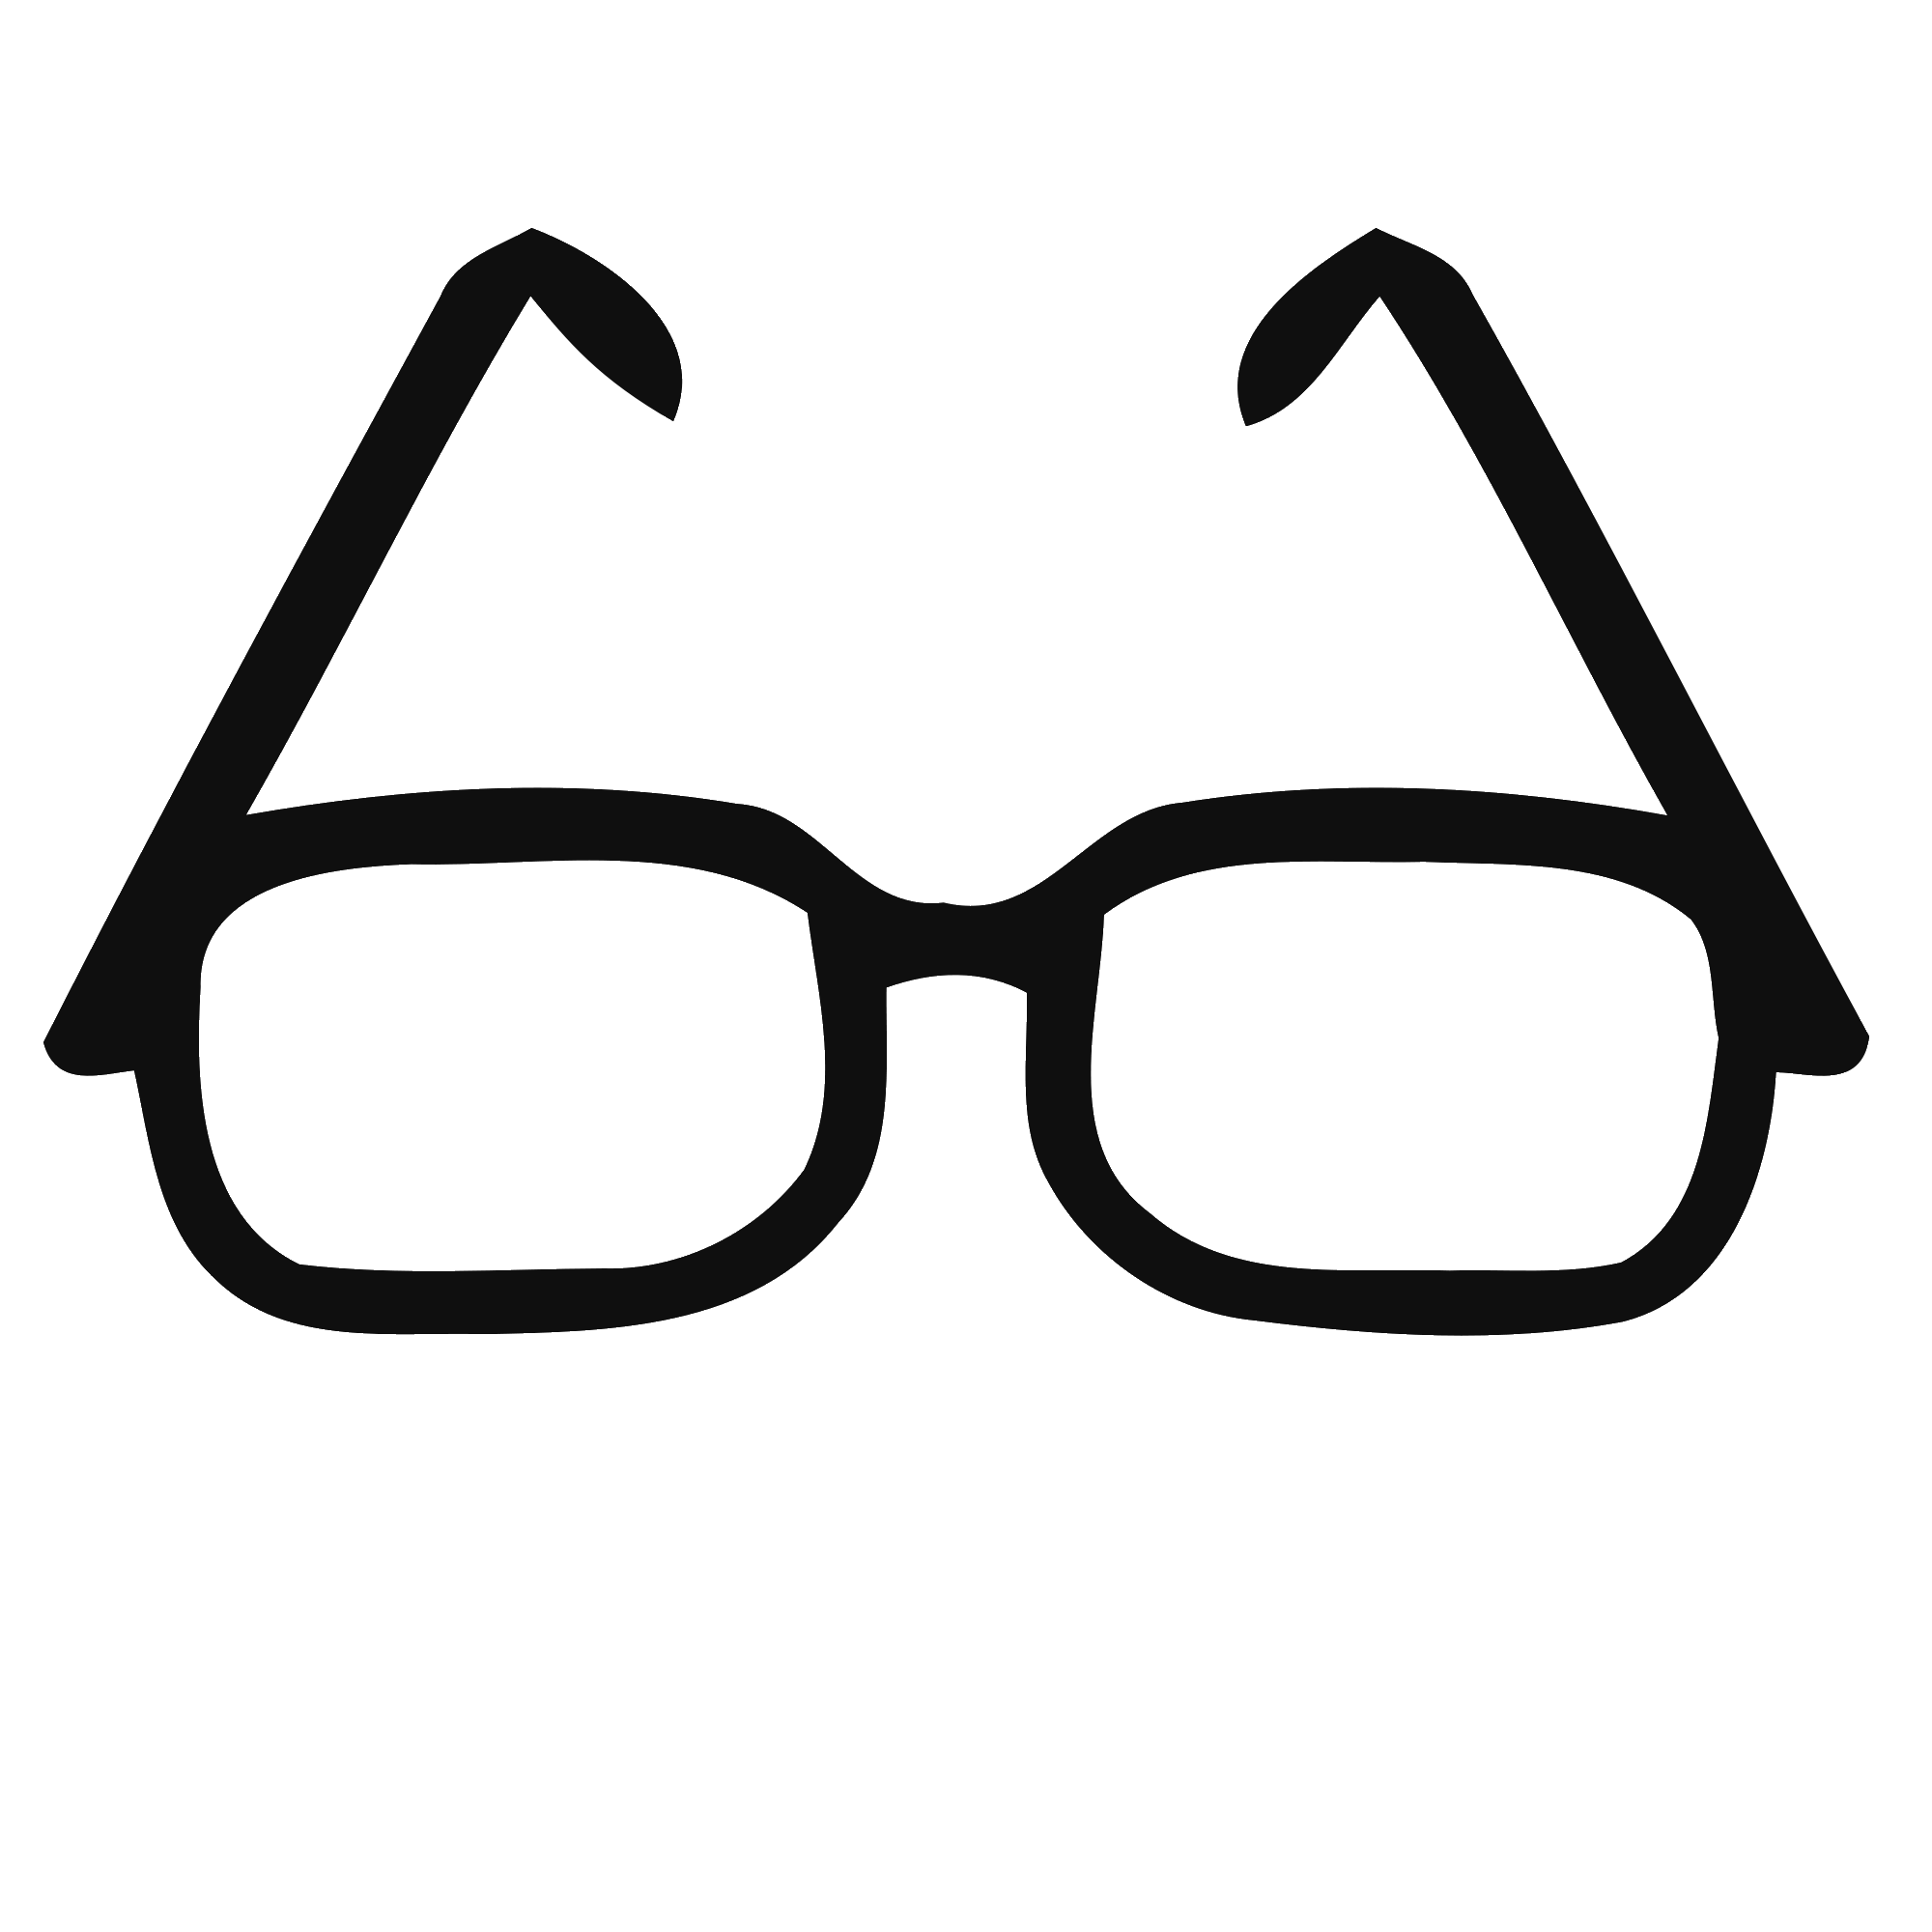 Glasses Free PNG Image